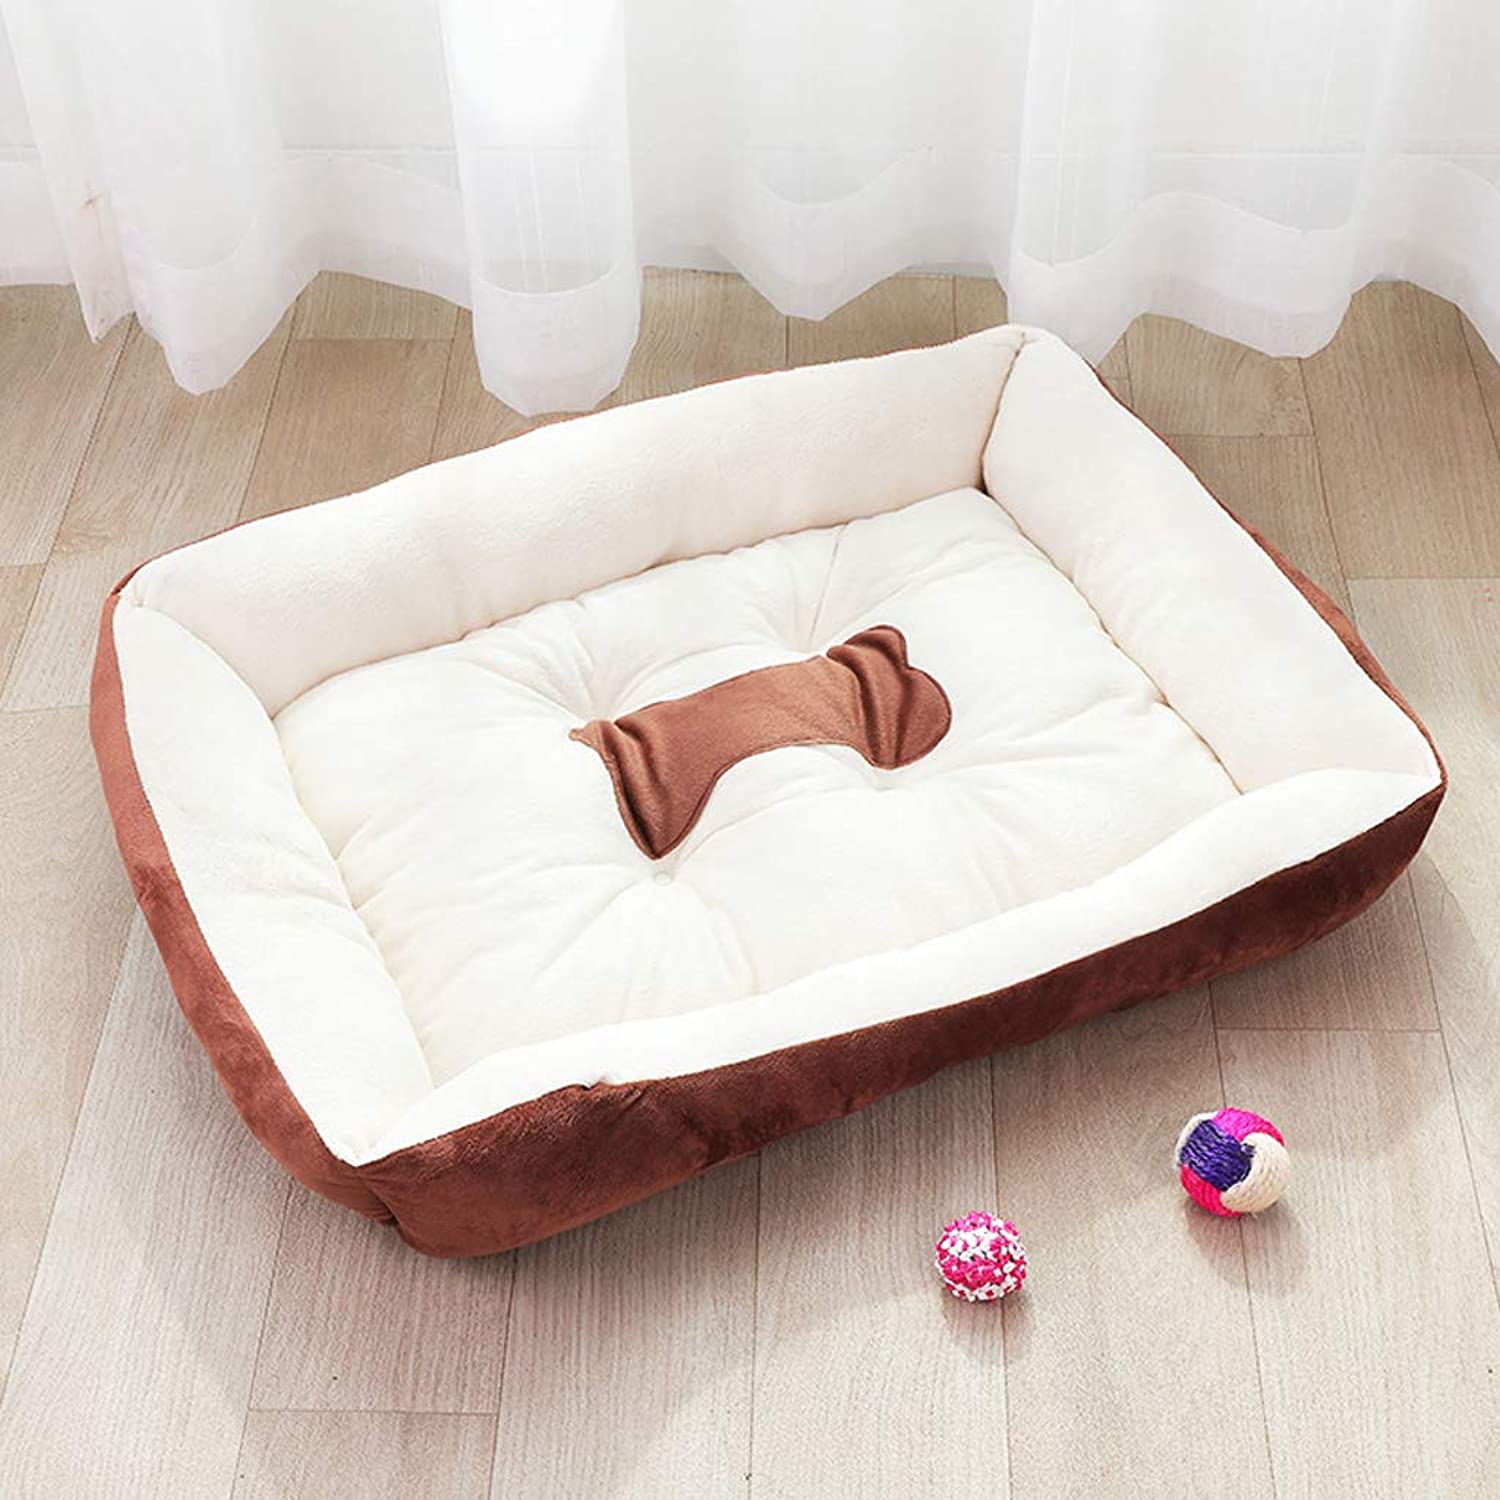 Kennel winter warm pet nest large dog cat litter dog mat dog house four seasons60cm